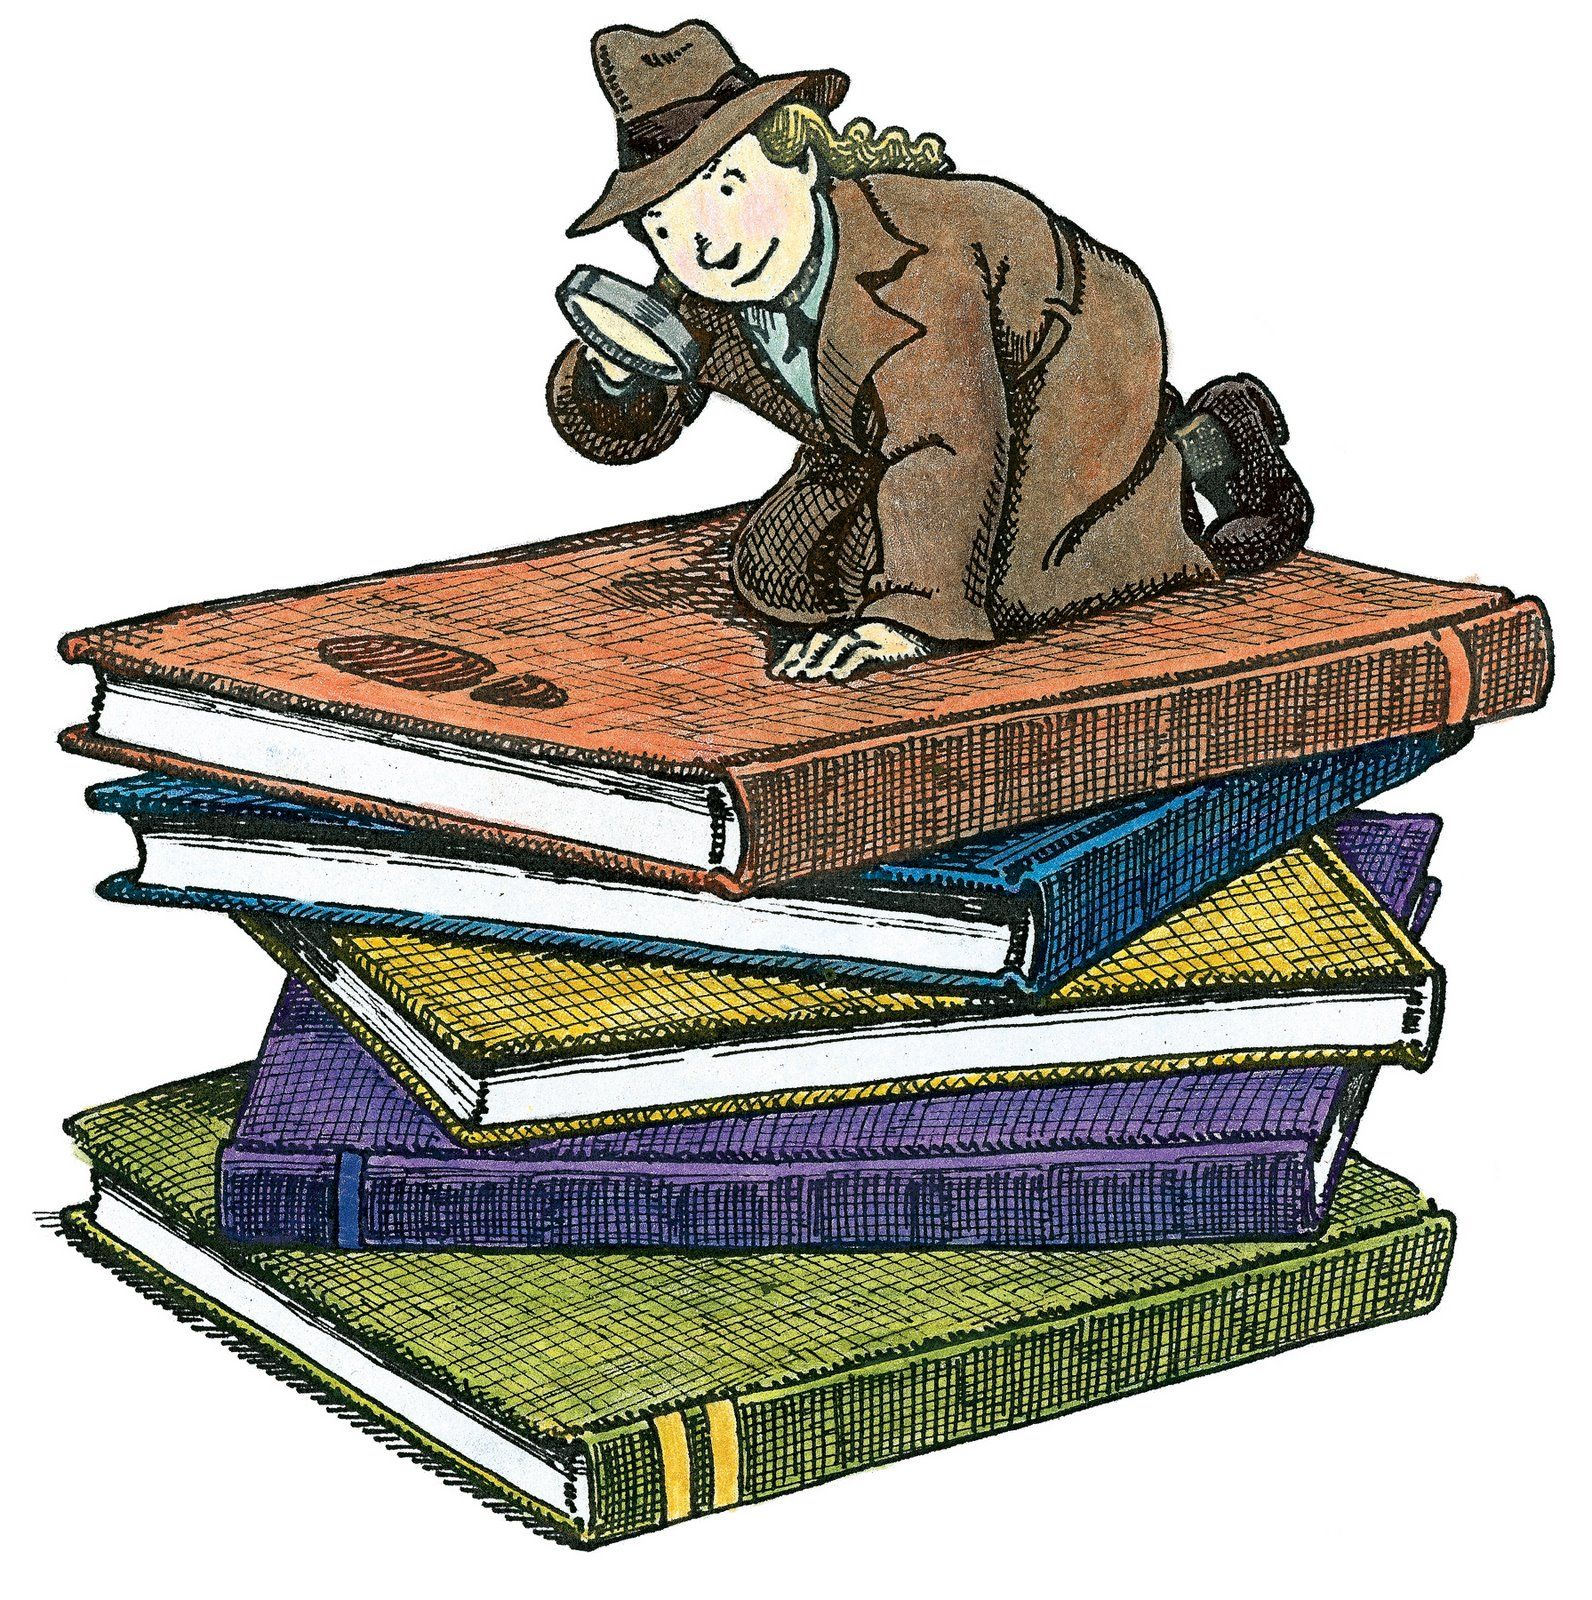 Mystery clipart topic. Images for genre genres